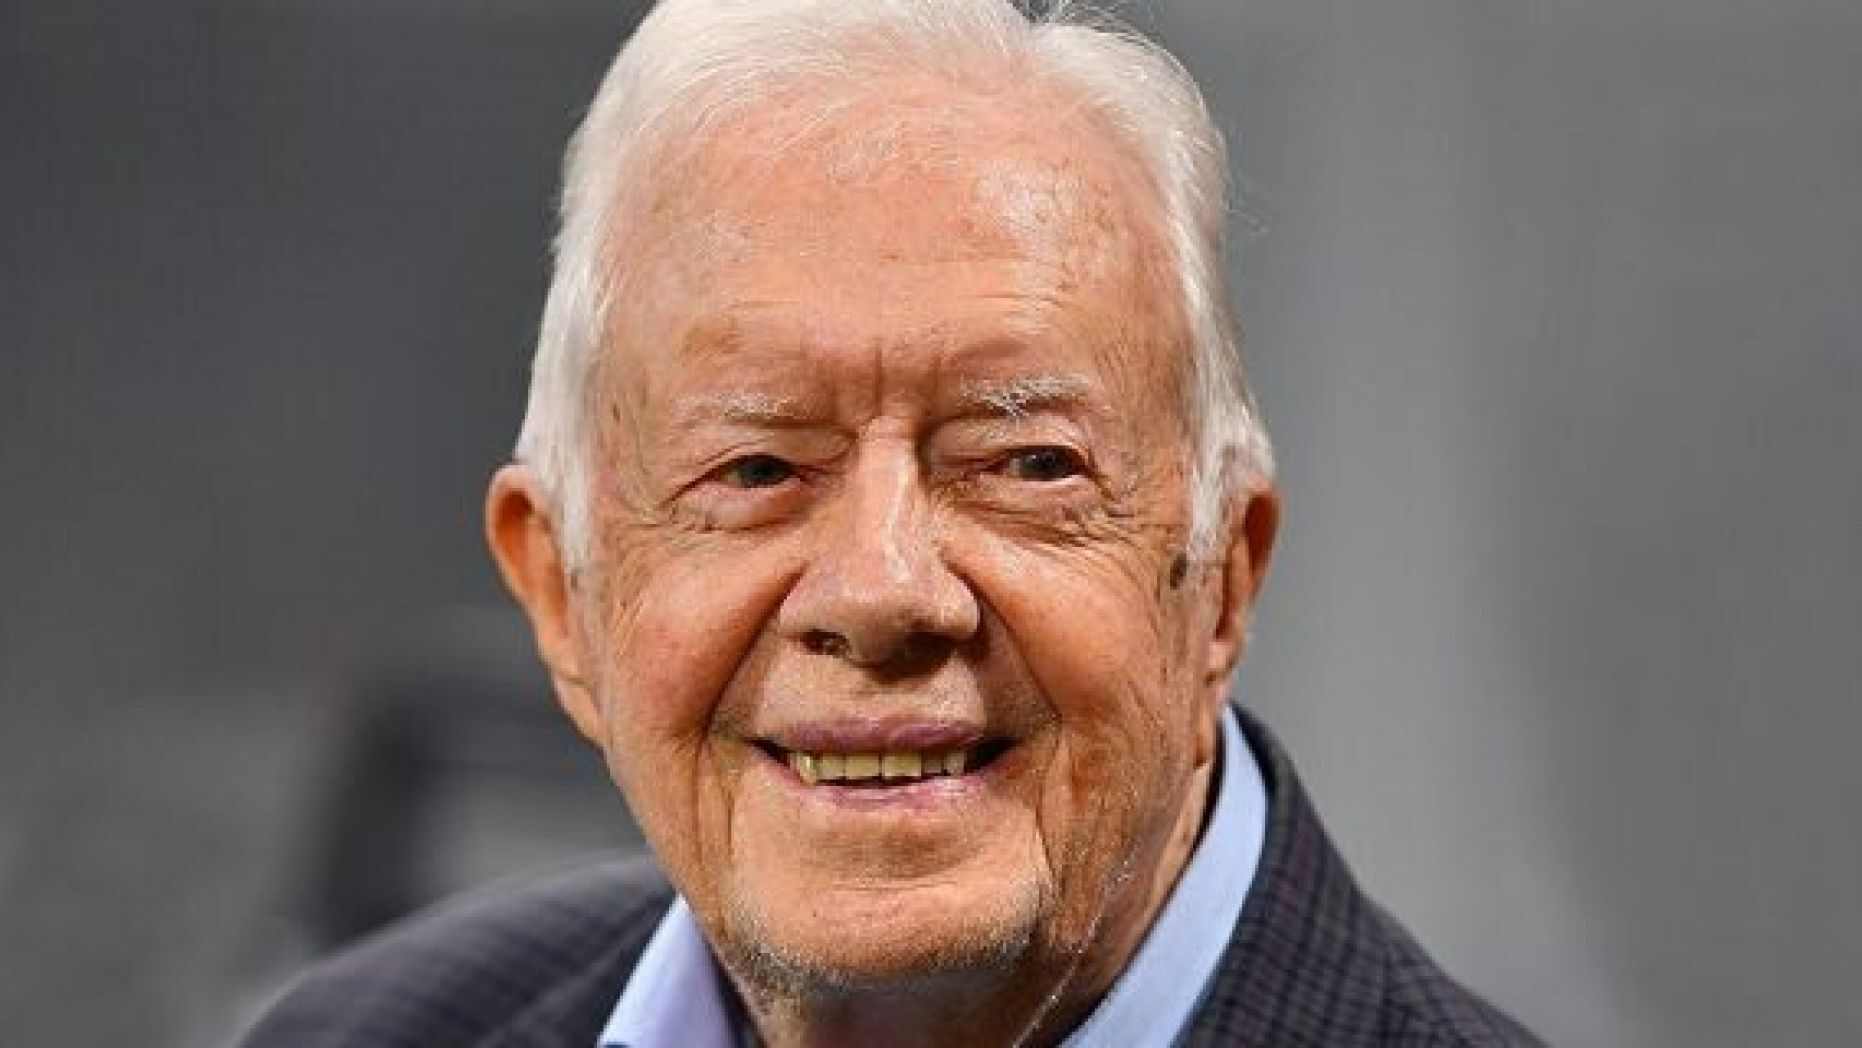 , Age is just a number says Former President Jimmy Carter This man is soooo strong.  We are lucky., The Politicus